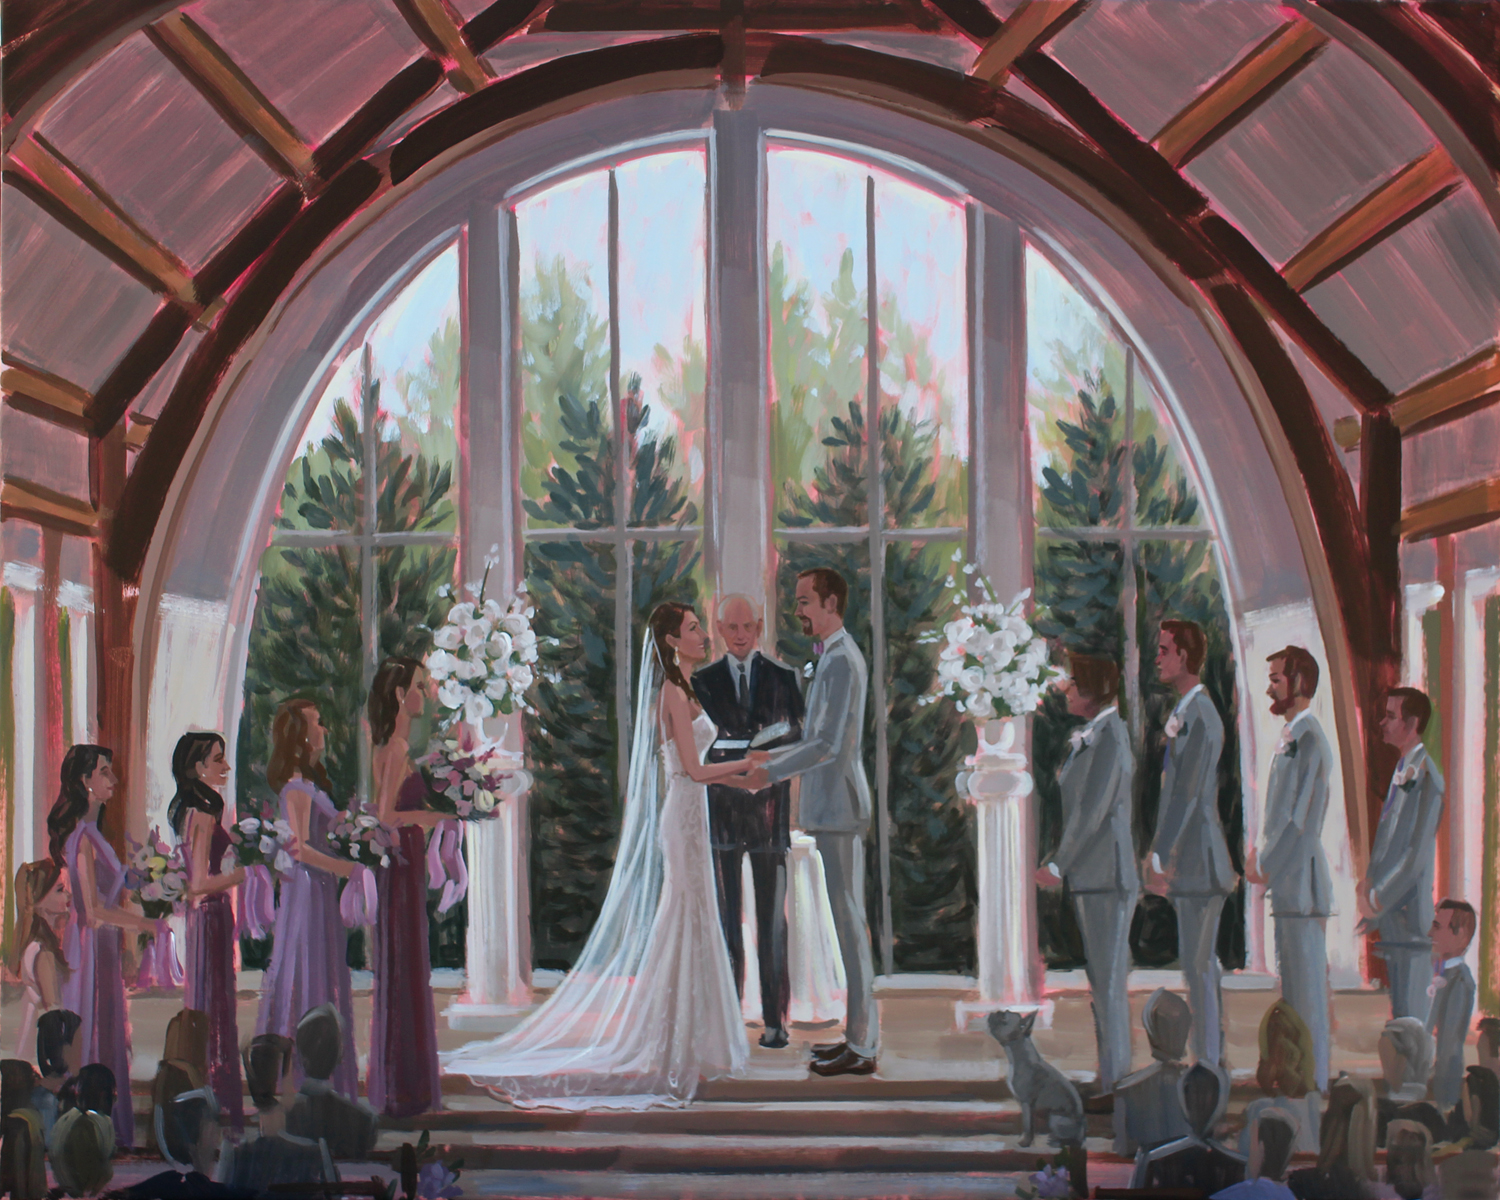 Live Wedding Painter, Ben Keys, of Wed on Canvas captured Krista + Matt's wedding ceremony in front of the gorgeous arched windows of Ashton Gardens in Houston, Texas.